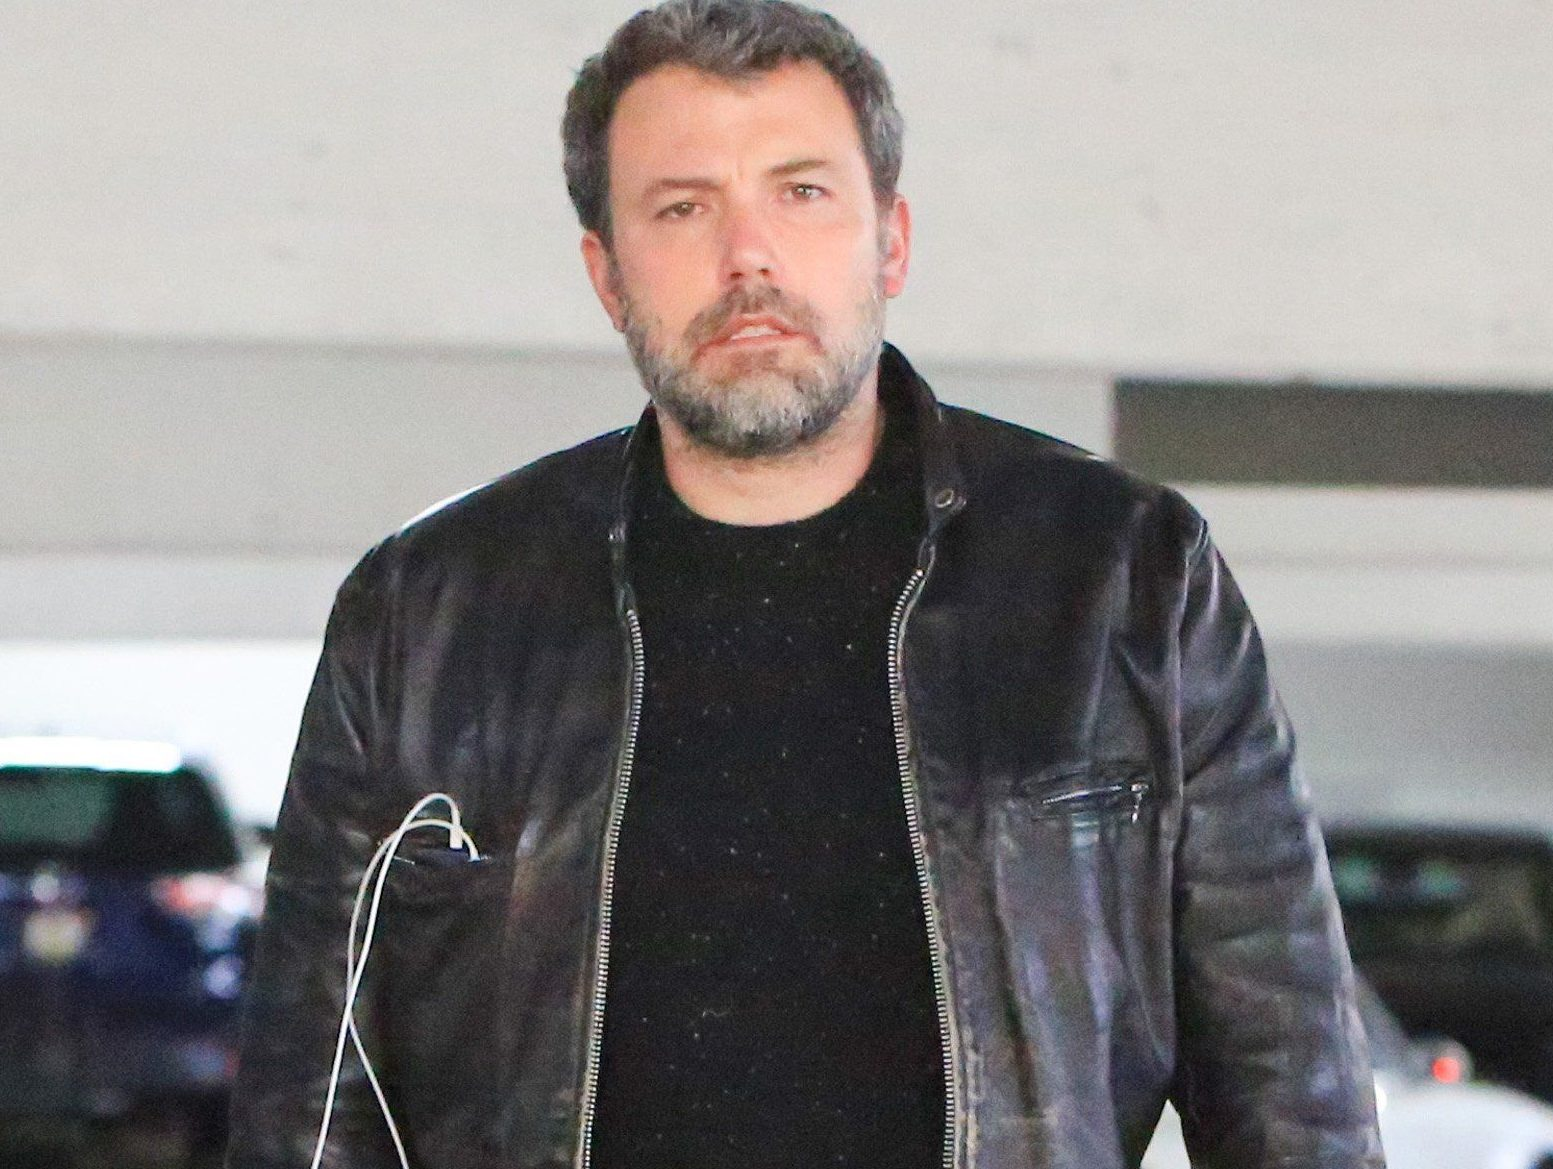 Ben Affleck net worth, age, and what he's said about his alcohol addiction